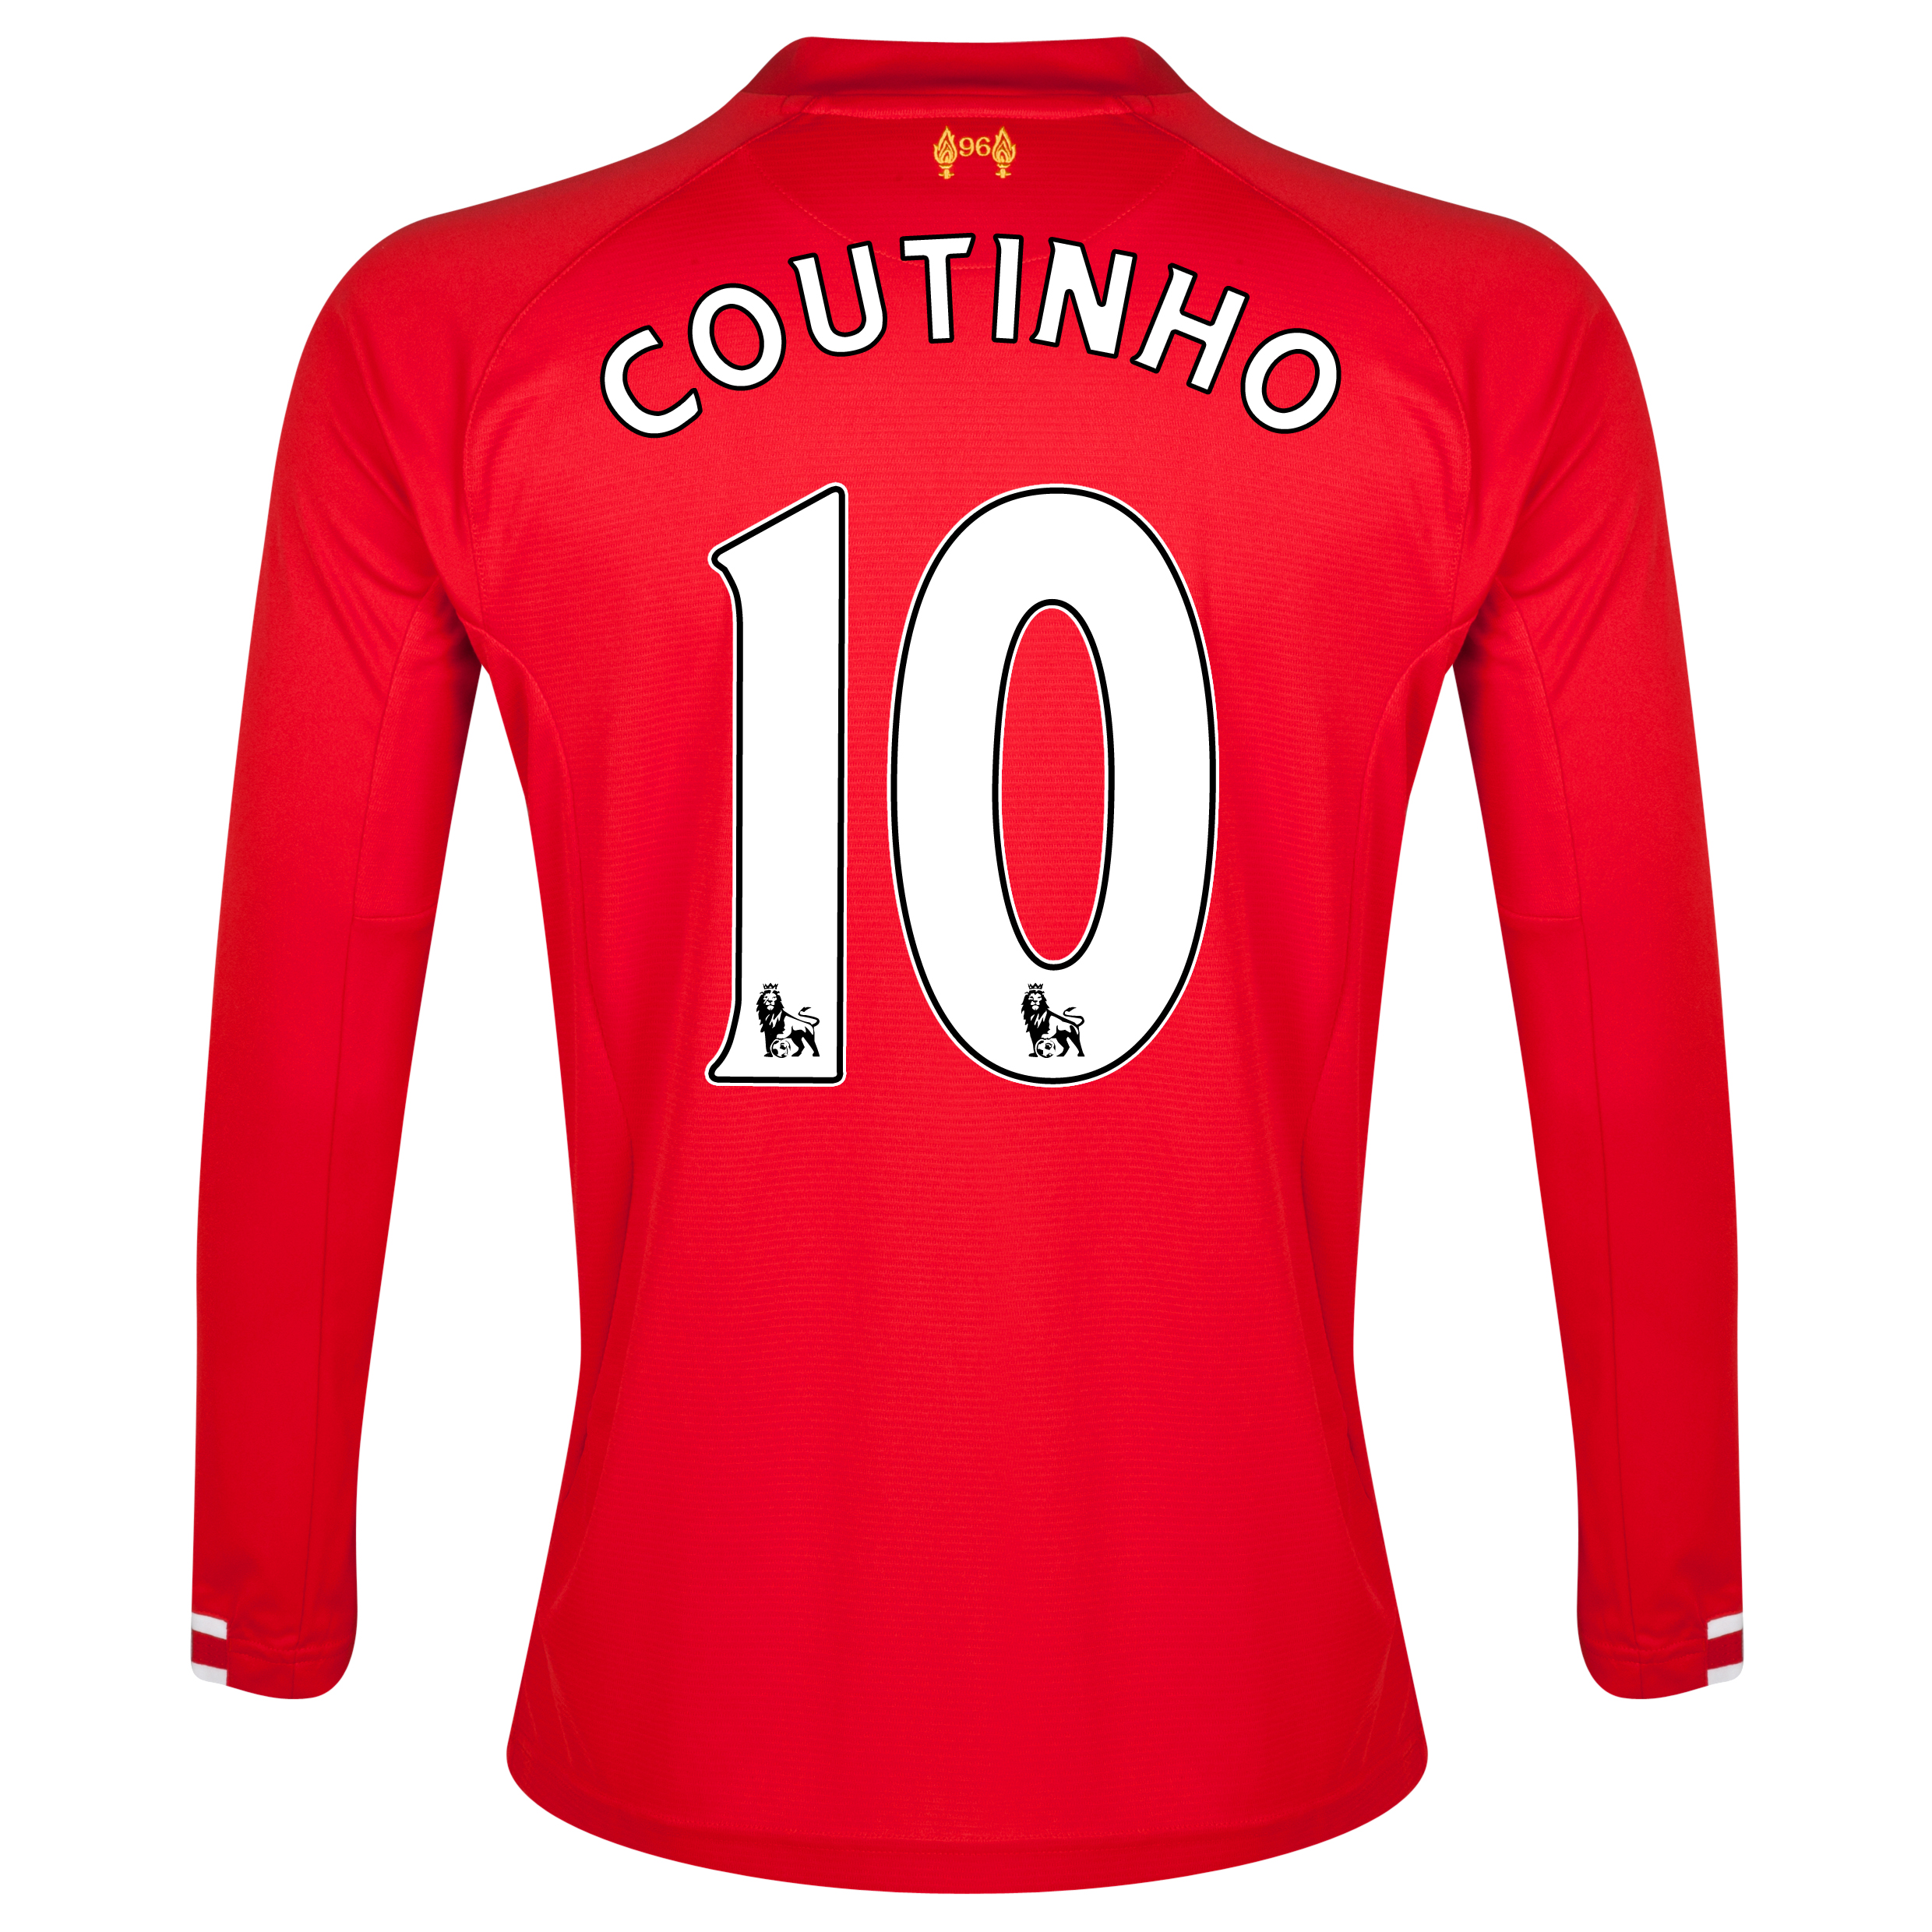 Liverpool Home Shirt 2013/14 Long sleeve with Coutinho 10 printing